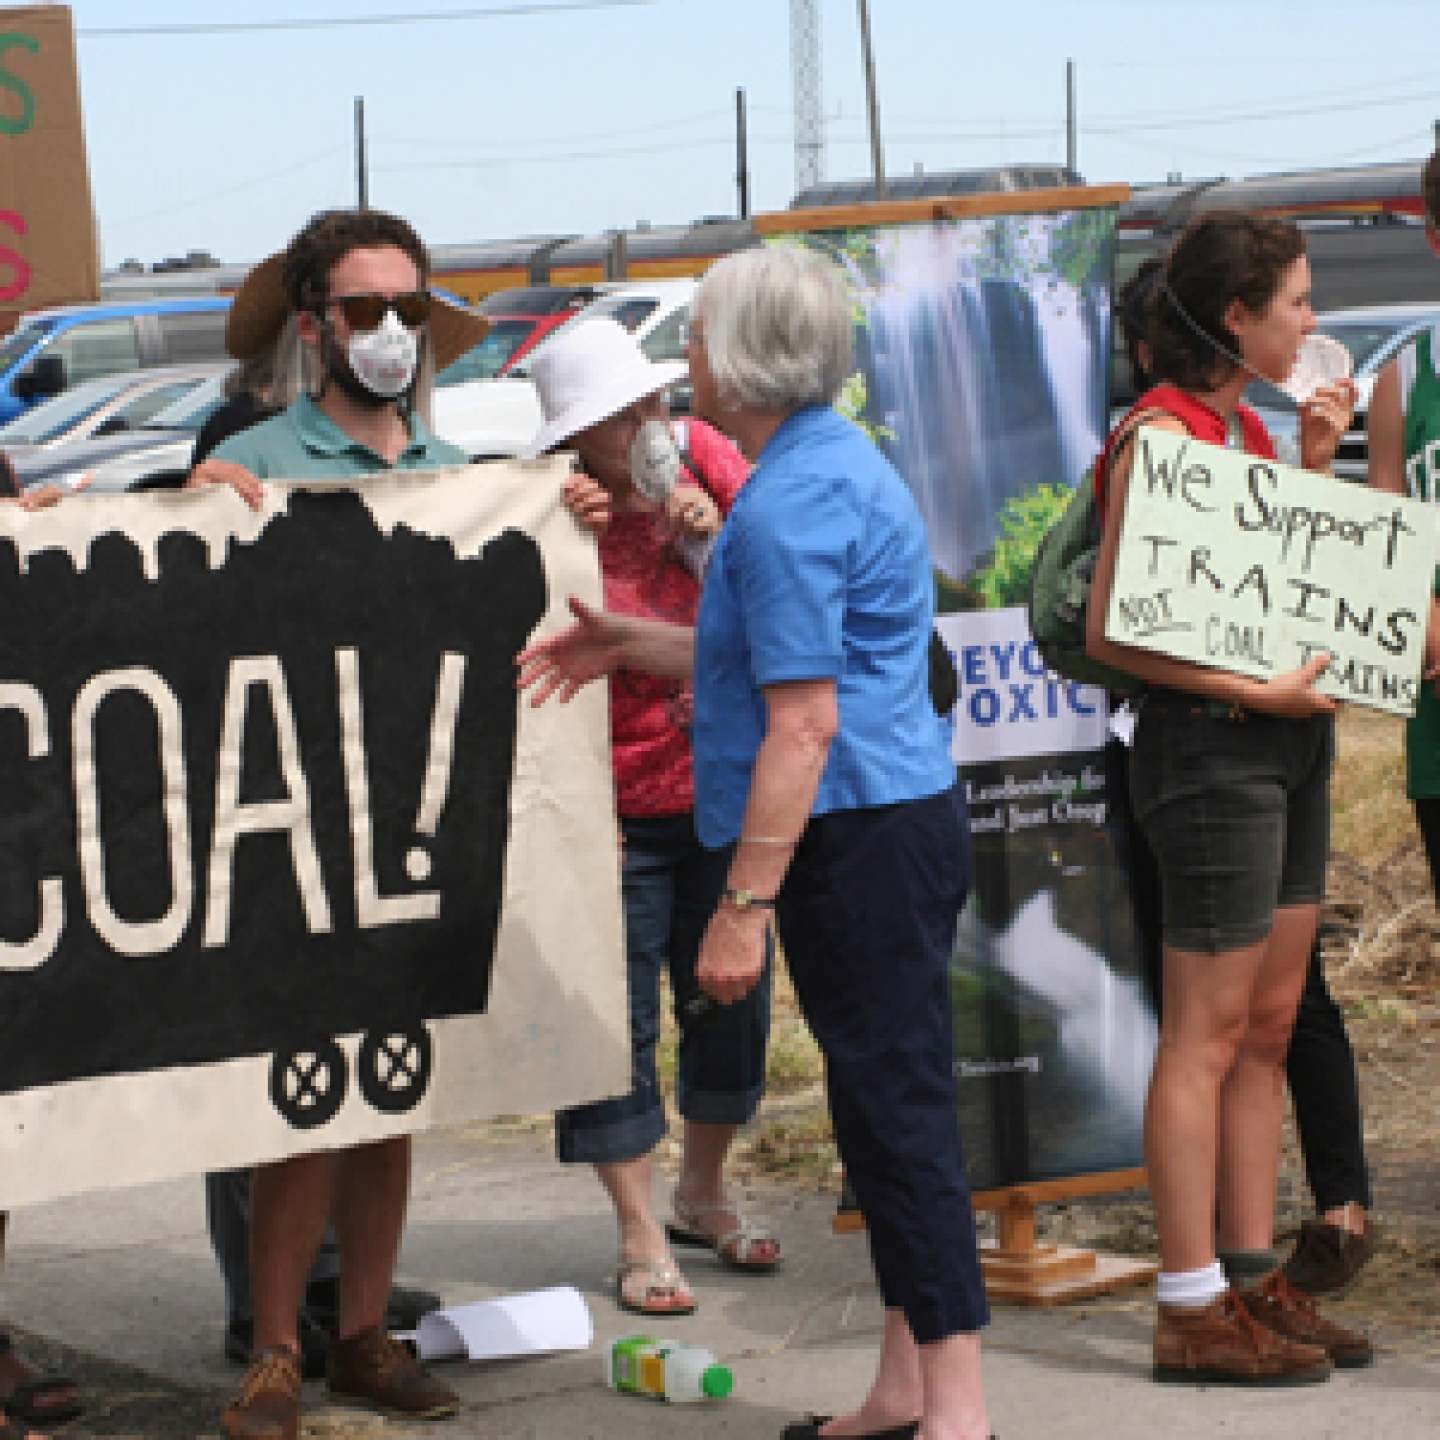 Beyond Toxics and No Coal Eugene talk to Mayor Piercy at Coal Protest 7-12-2012